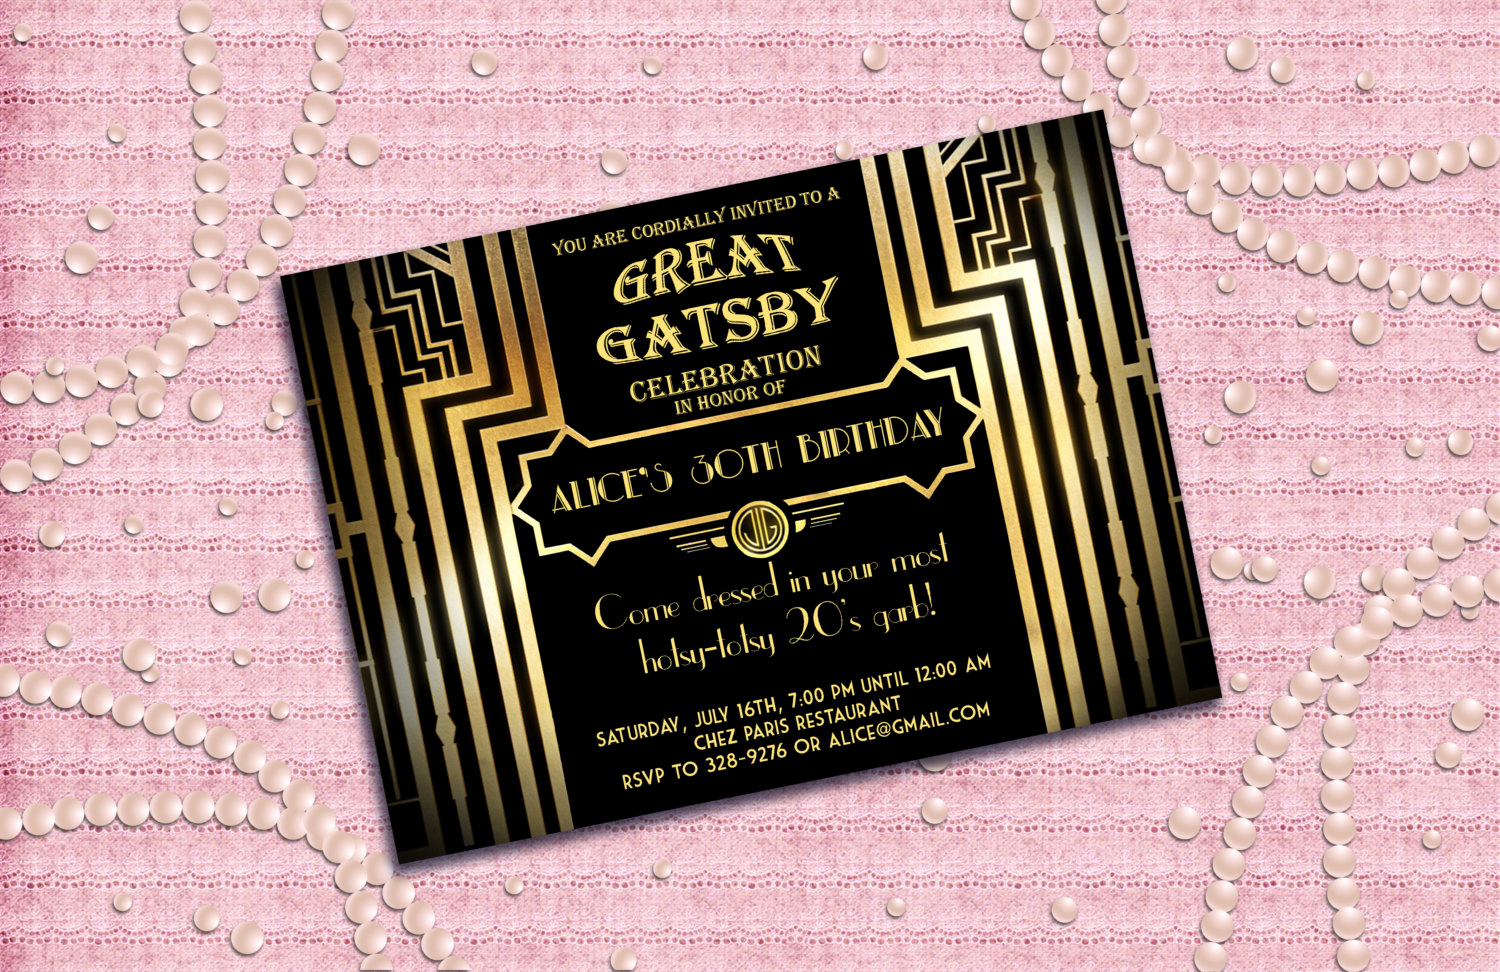 1920s Party Invitation Template Free Beautiful Great Gatsby Style Art Deco Birthday Party Invitation by